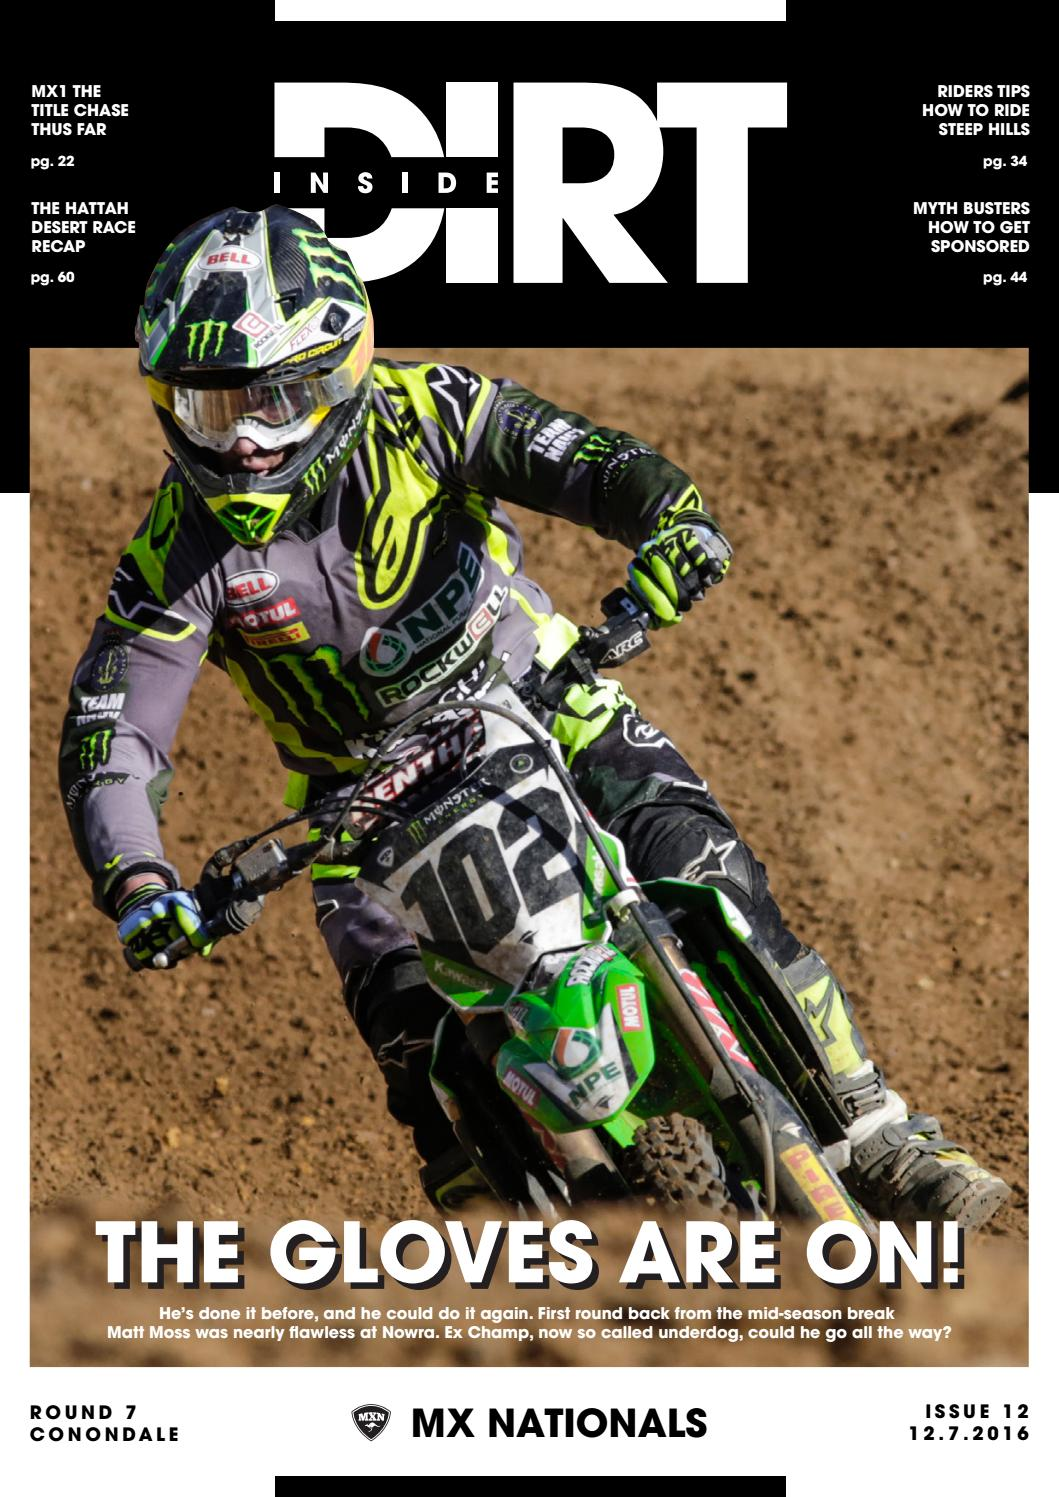 Inside Dirt - Issue 12: MX Nationals Round 7 by MX Nationals